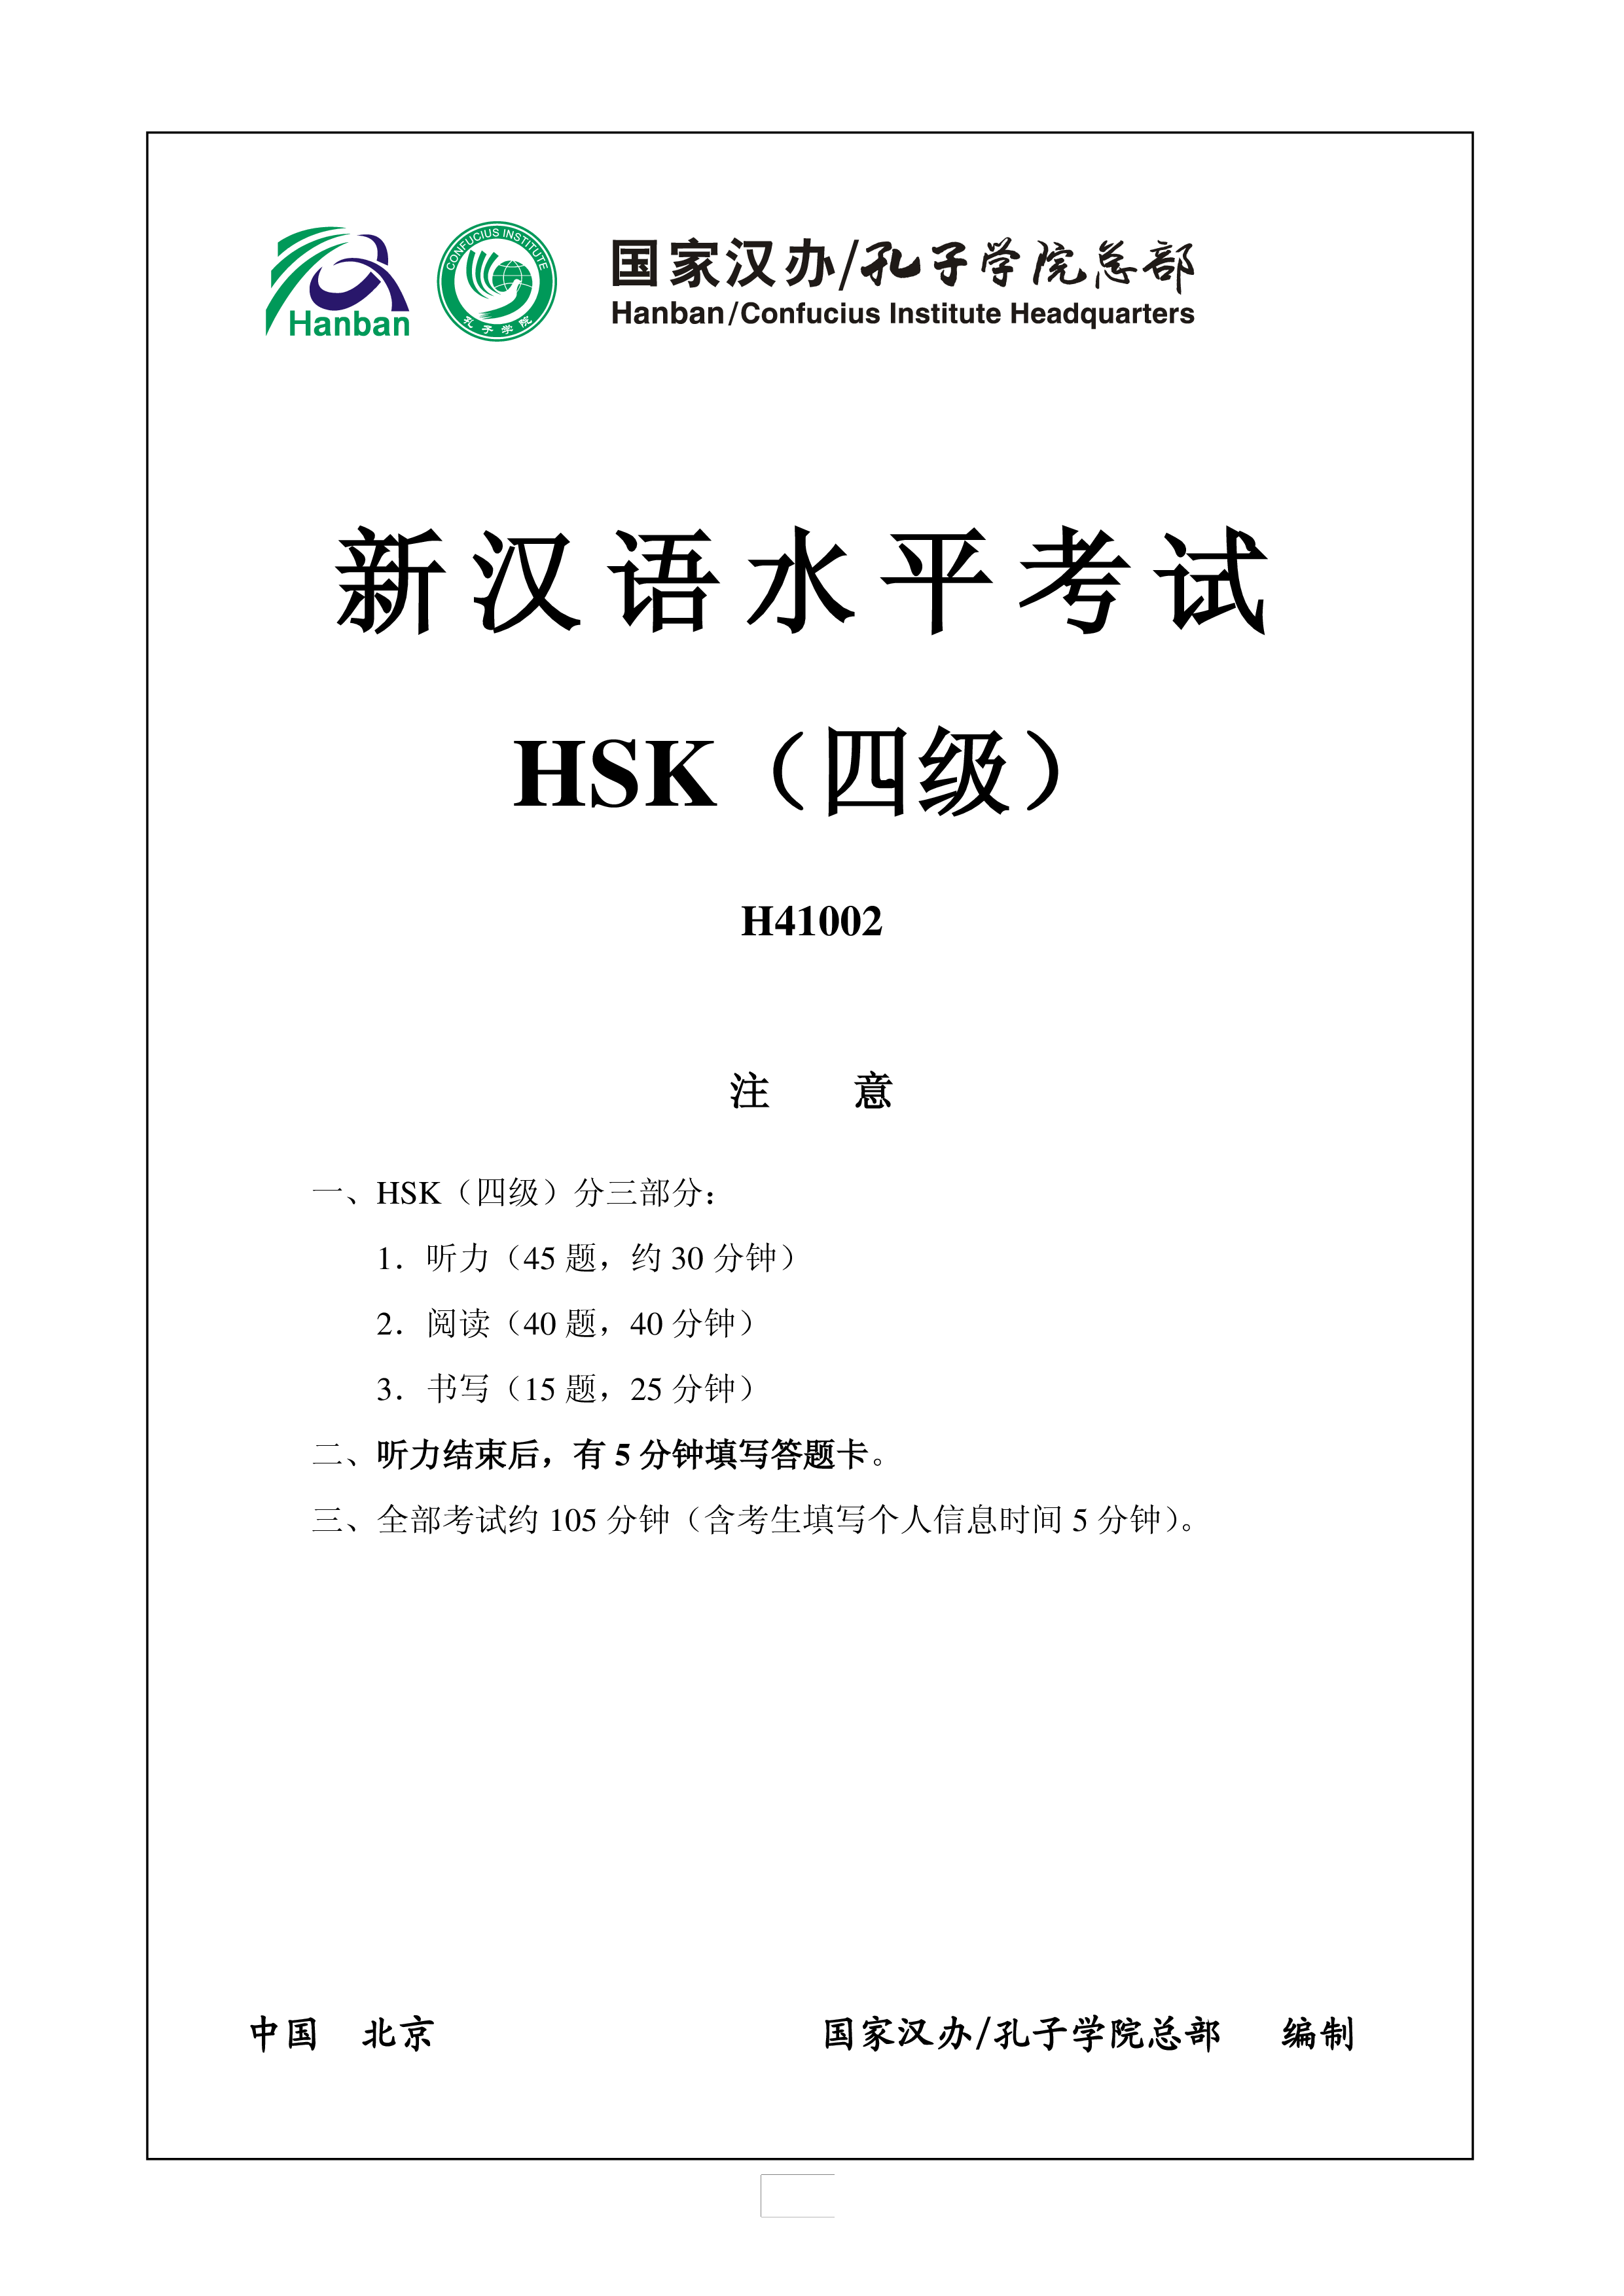 HSK4 Chinese Exam including Answers # HSK H41002 main image